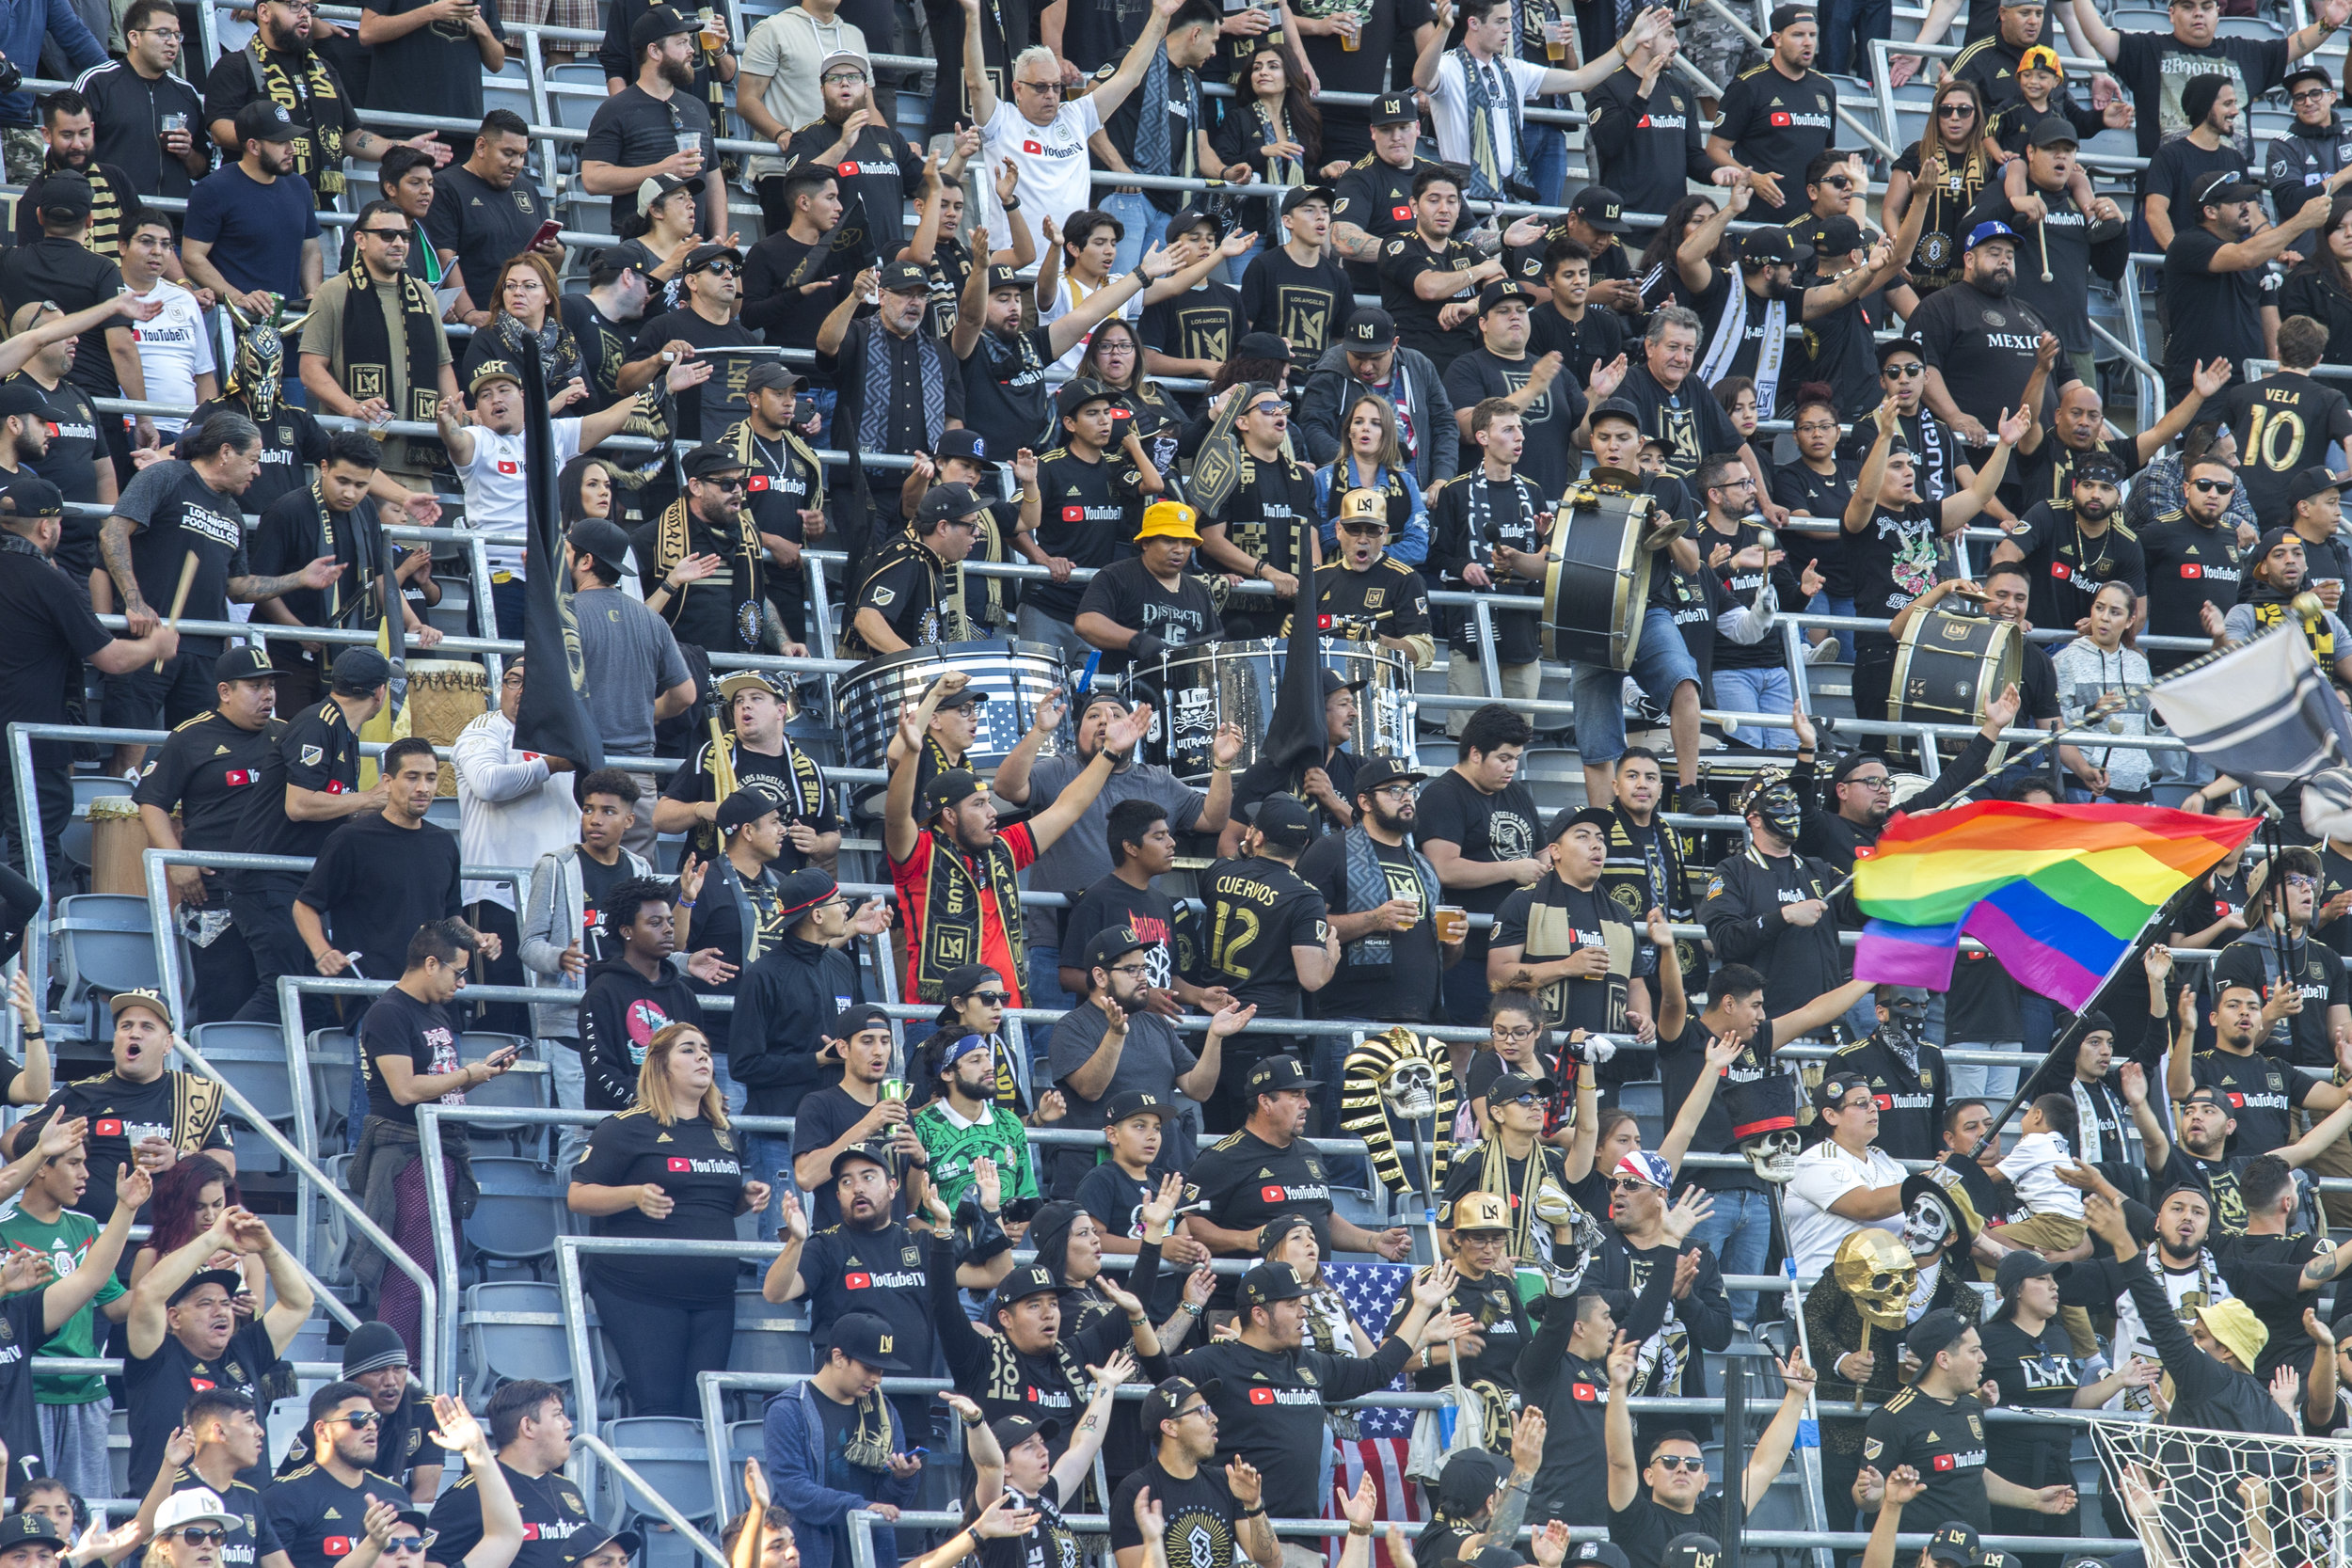 Fans cheer for the Los Angeles Football Club before their second home match of the season against the Minnesota United Football Club while sporting an LGBTQ flag. There was an incident in the teams first game where fans were shouting homophobic slurs. LAFC won the game 2-0 (Zane Meyer-Thornton/Corsair Photo)